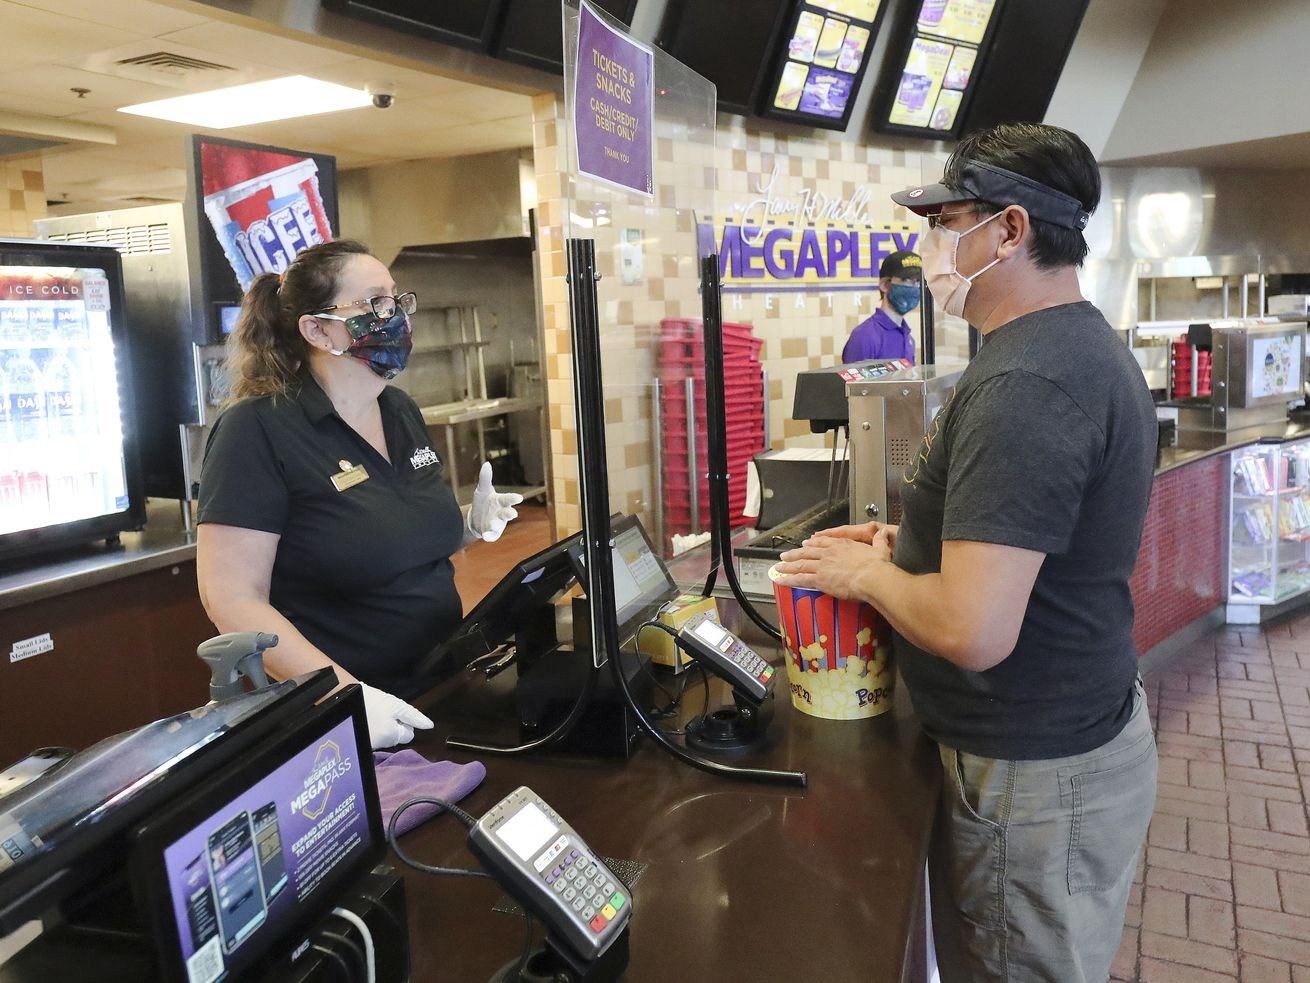 Megaplex Theatres is giving customers 2 free tickets this month. Here's how to claim them